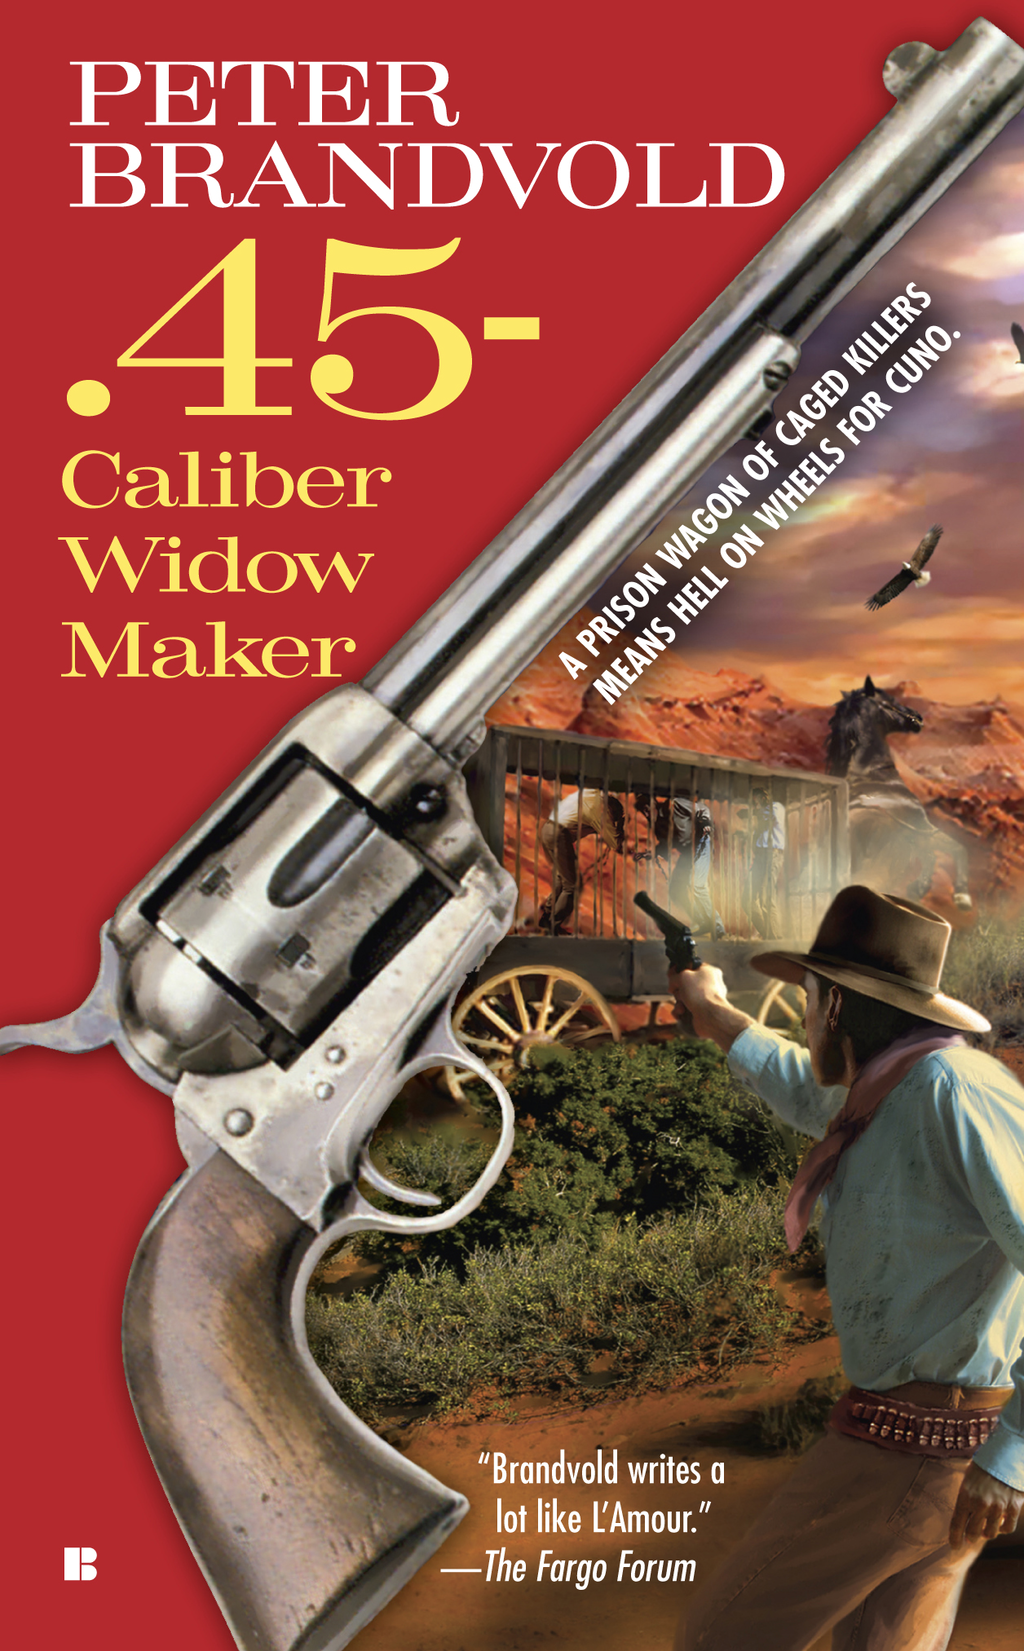 .45-Caliber Widow Maker